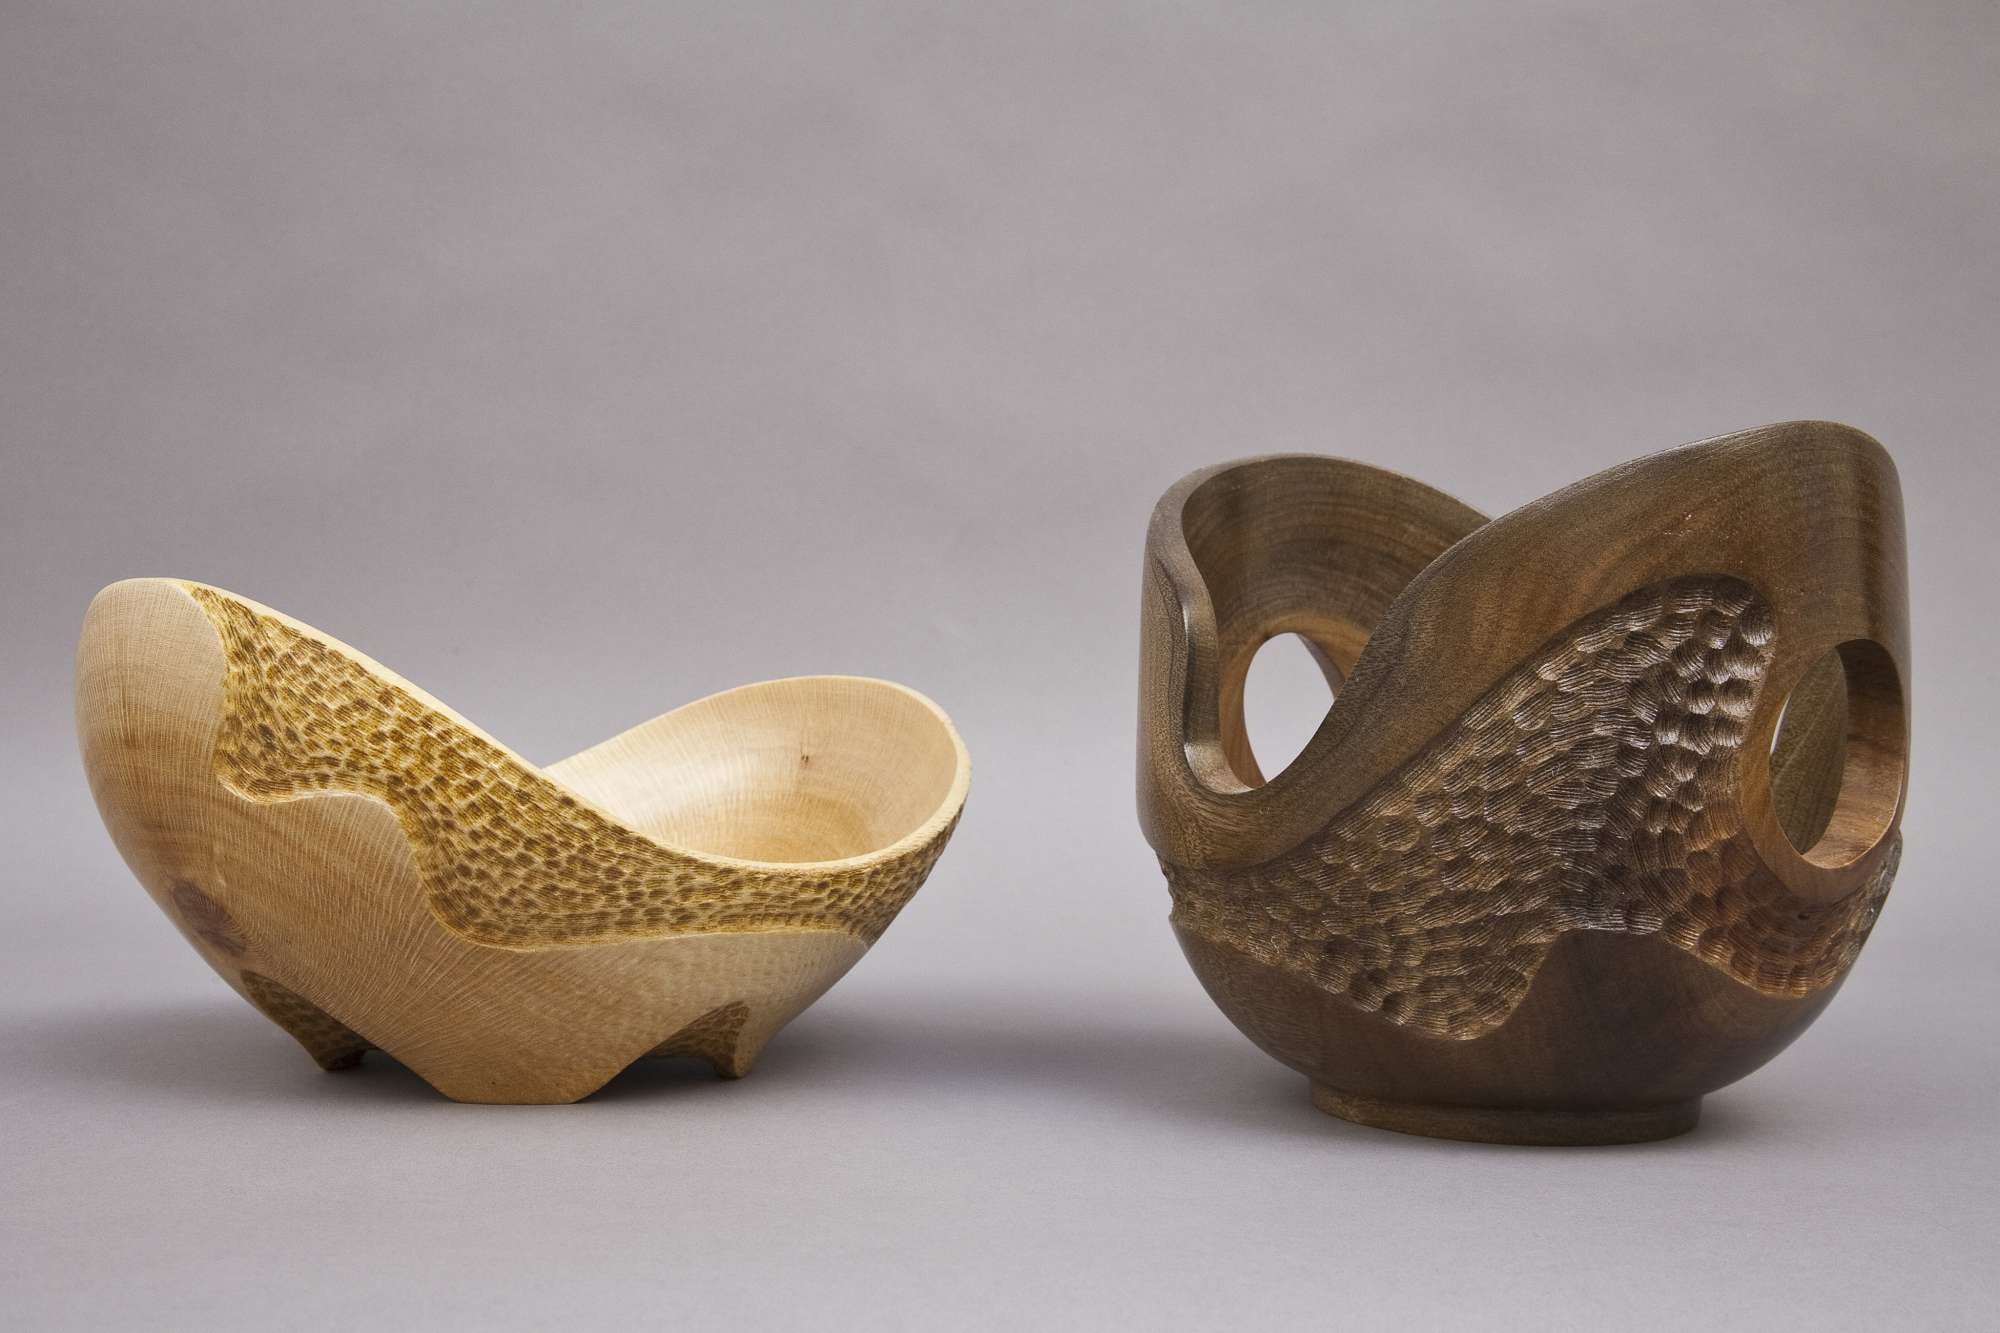 Sculptured Bowls